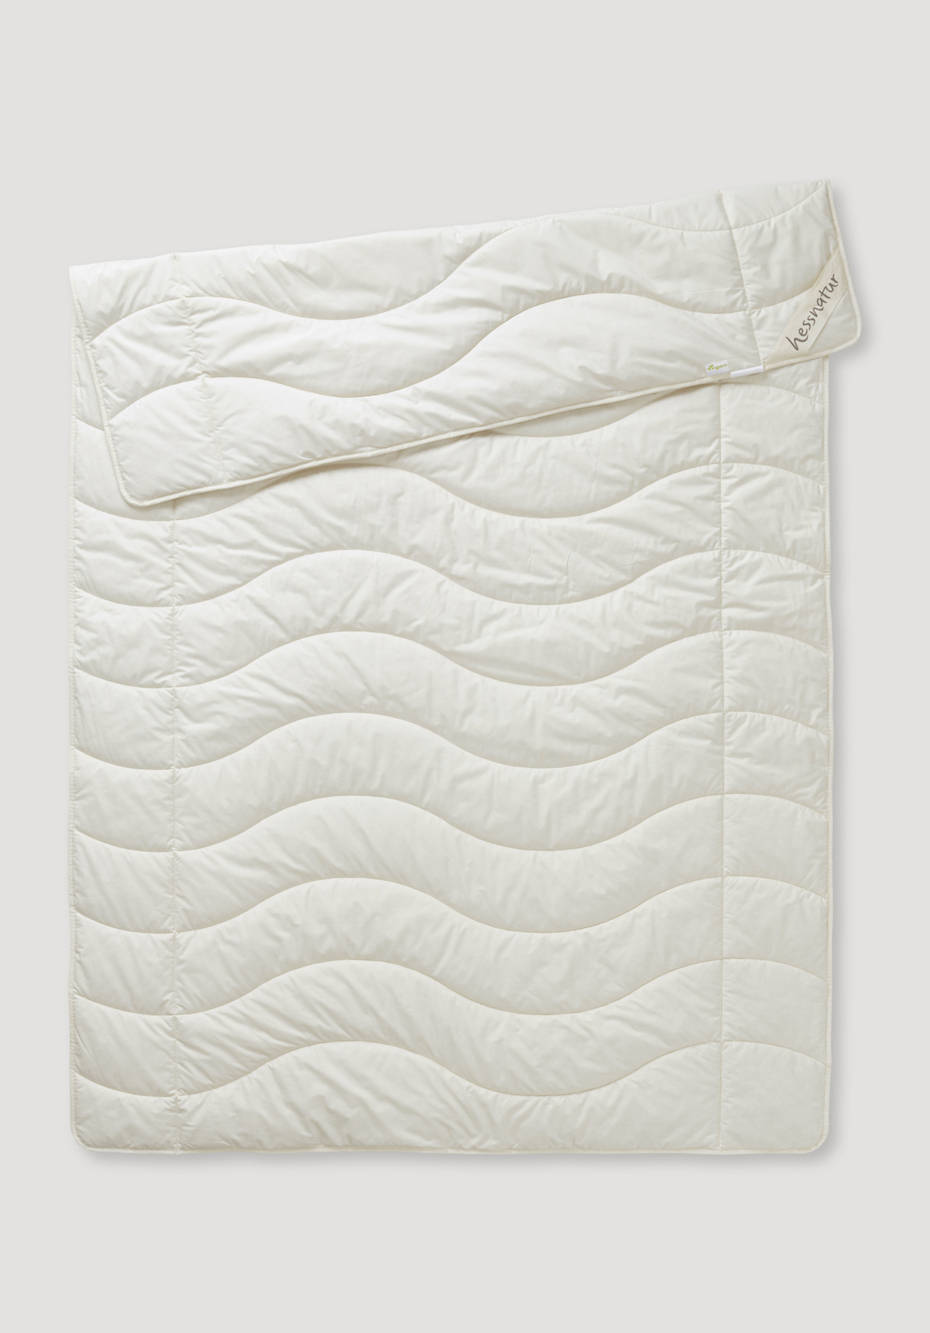 Light summer blanket made of organic cotton with nettle